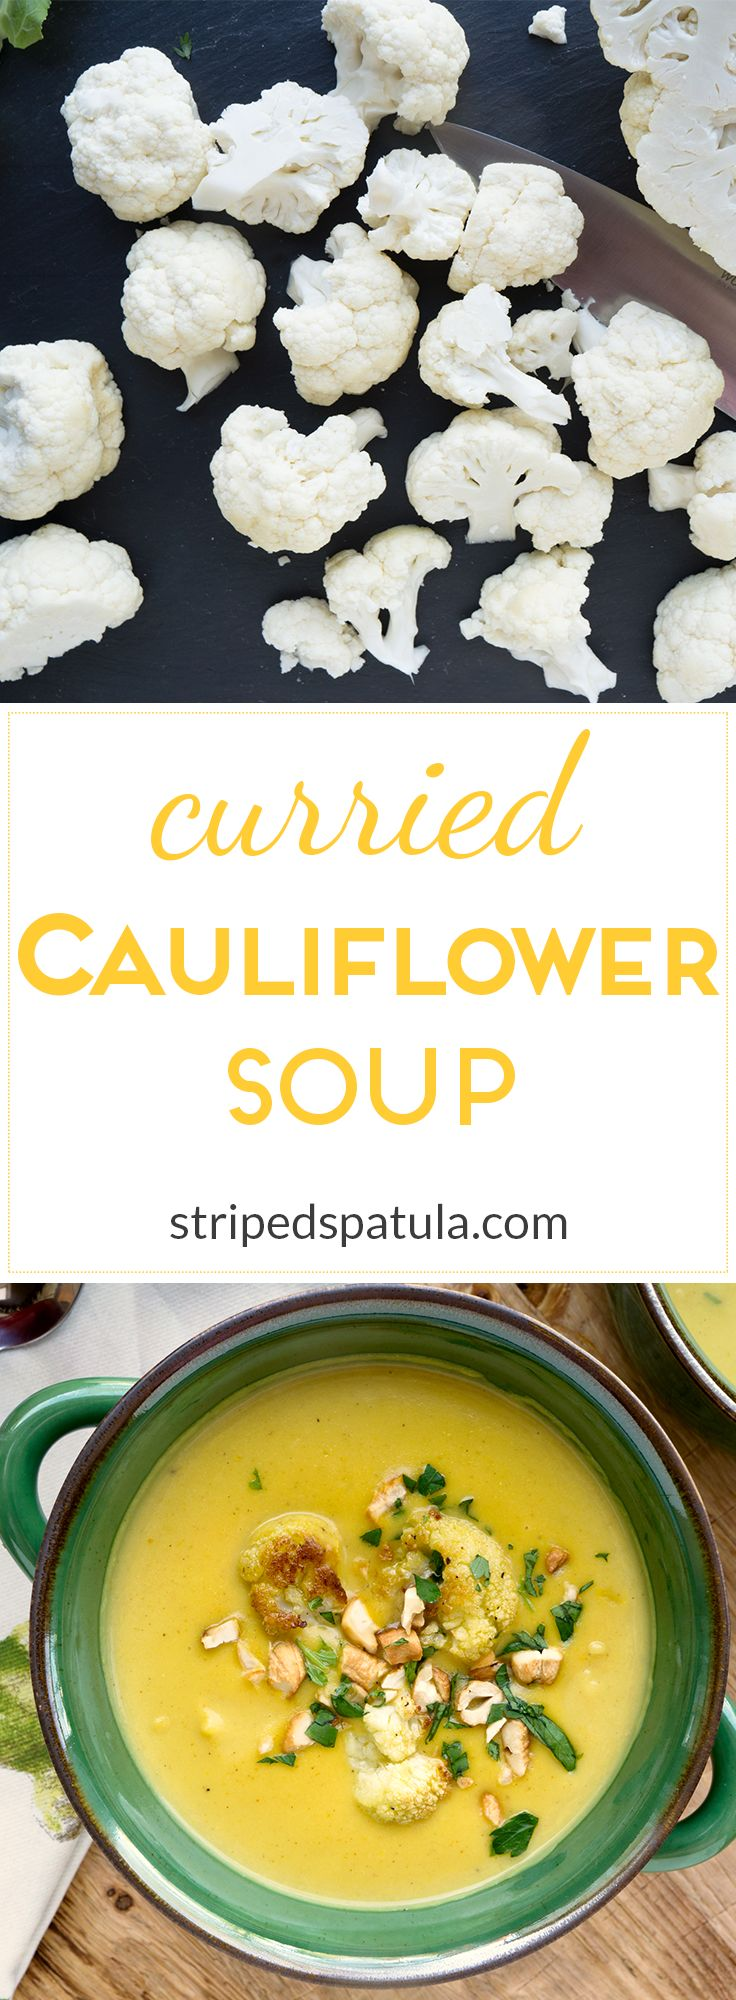 curried cauliflower soup with roasted cauliflower florets mild curry ...